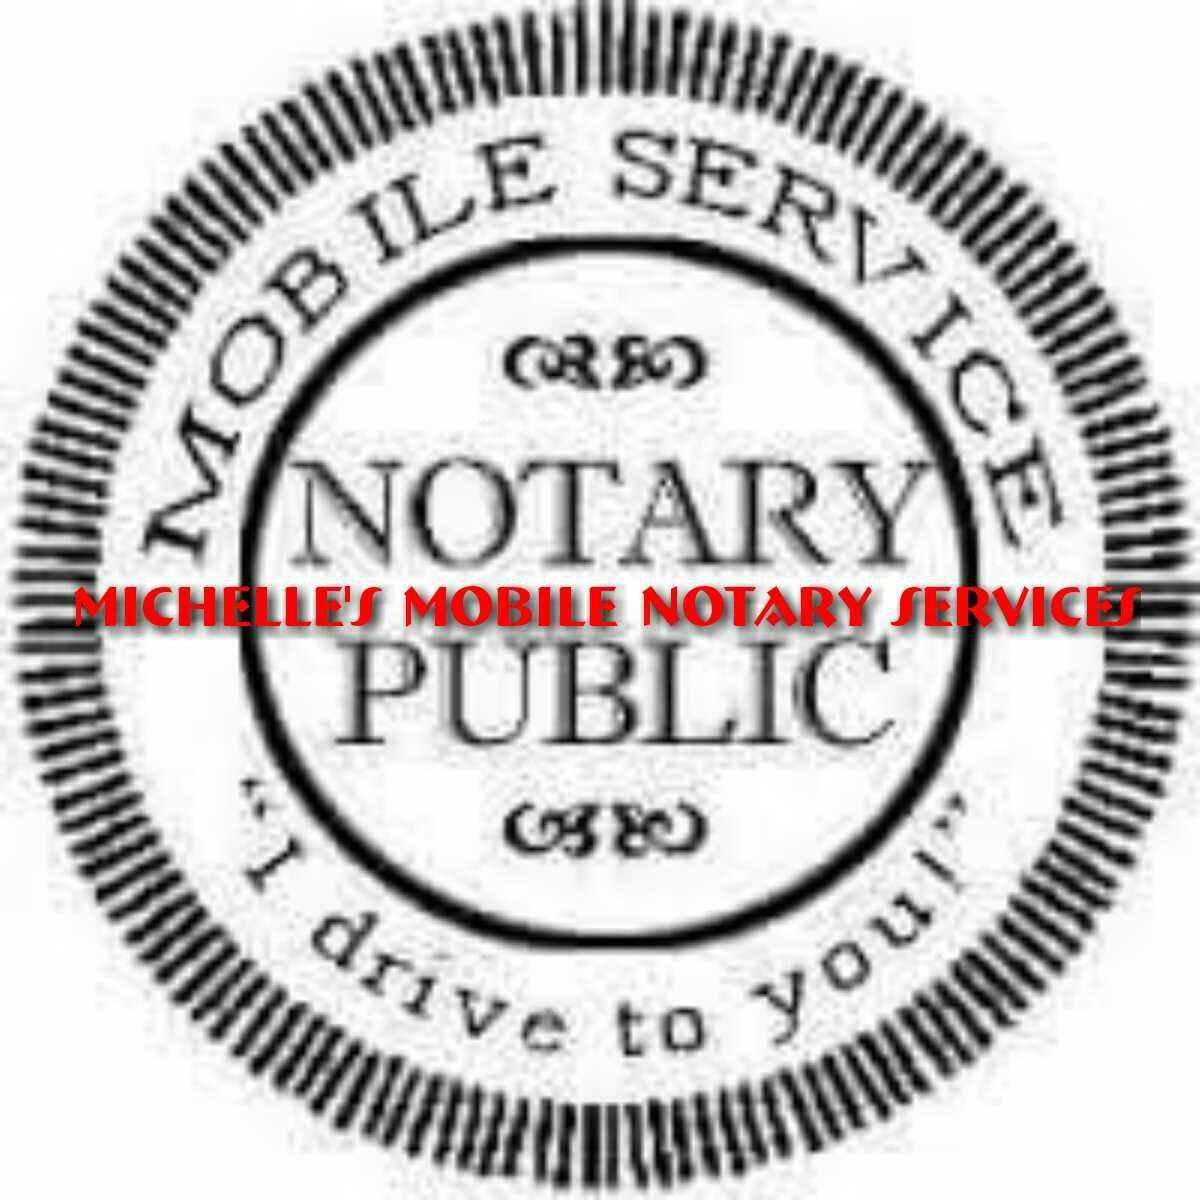 Pin By Miguel Marquez On Fun Stuff I Dig Mobile Notary Notary